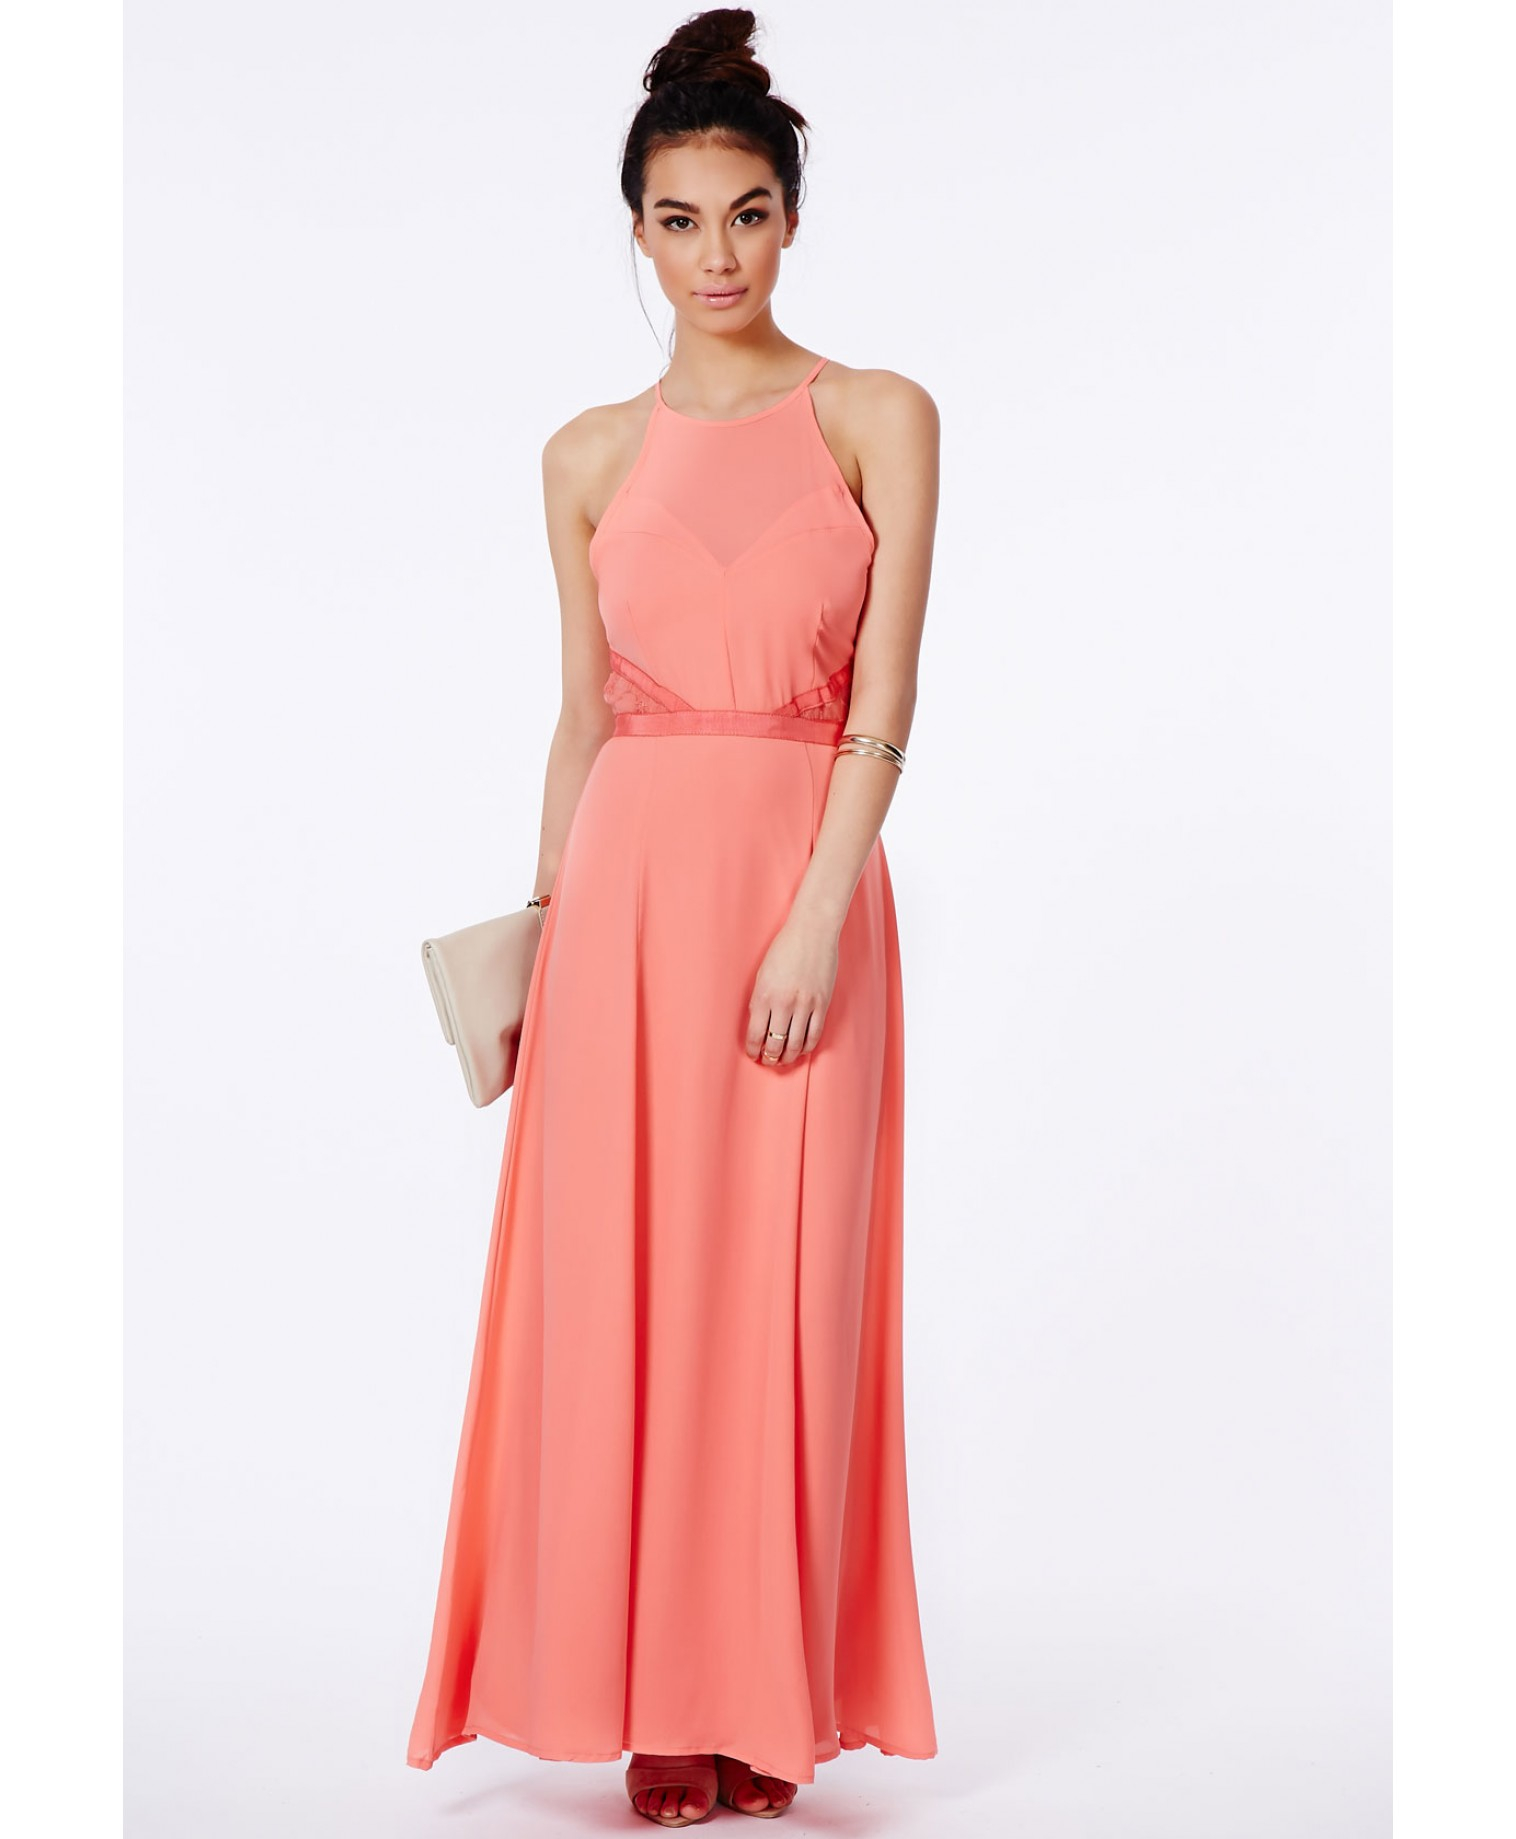 Missguided Kamilinka Lace Backless Maxi Dress In Coral in Red | Lyst